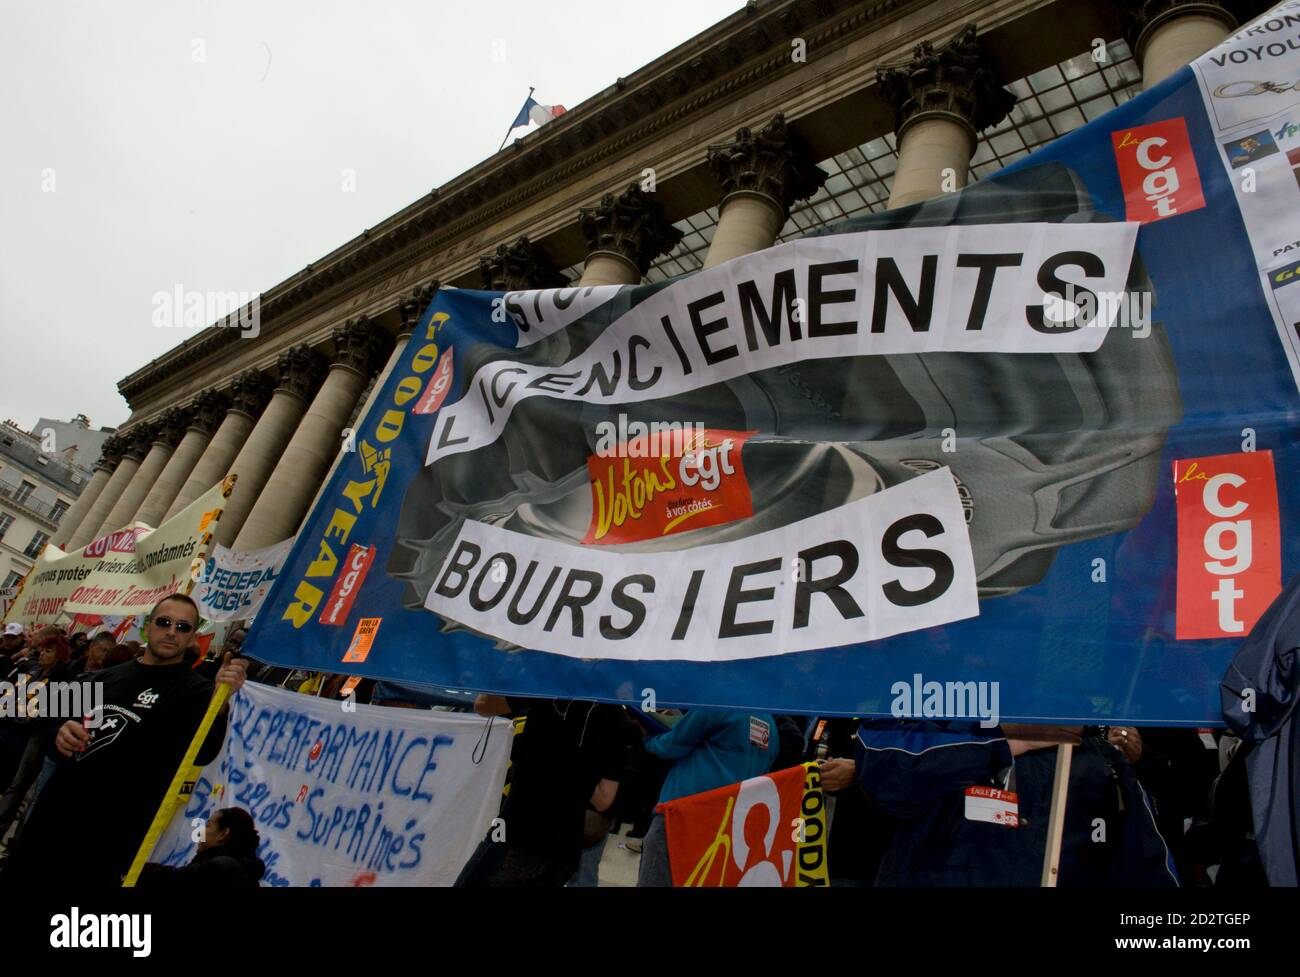 "Continental tyre workers and members of the automobile sector stand near a banner which partially reads, ""Stock Market Sackings"" outside the former Bourse (stock market) in central Paris, September 17, 2009. Continental's workers are protesting the announced closing of their factory at Clairoix, in northern France and its 1,120 workers have been fighting for guarantees for their future. REUTERS/Philippe Wojazer (FRANCE EMPLOYMENT BUSINESS CONFLICT) Stock Photo"